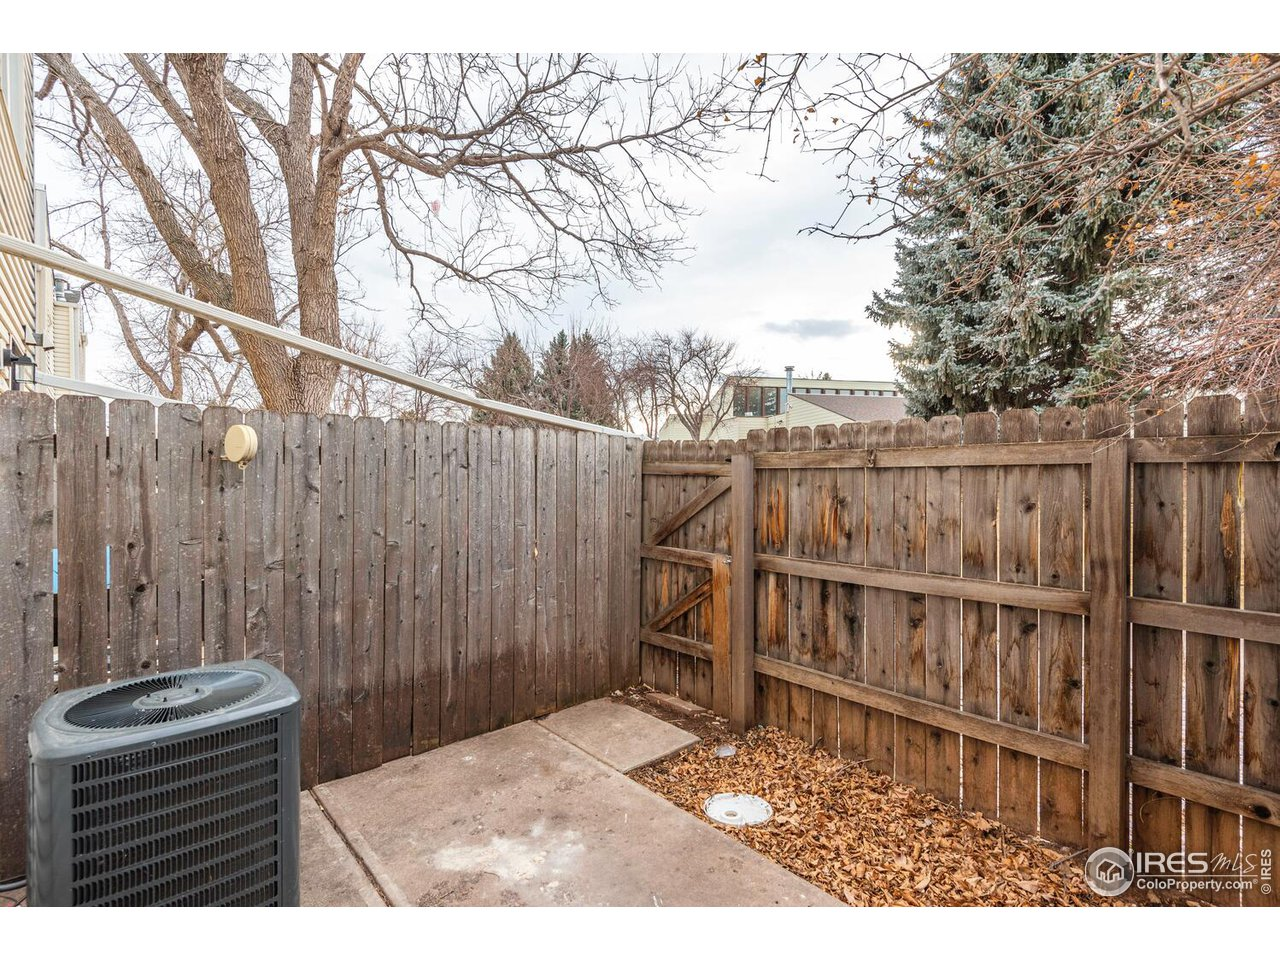 Fully enclosed wooden fencing